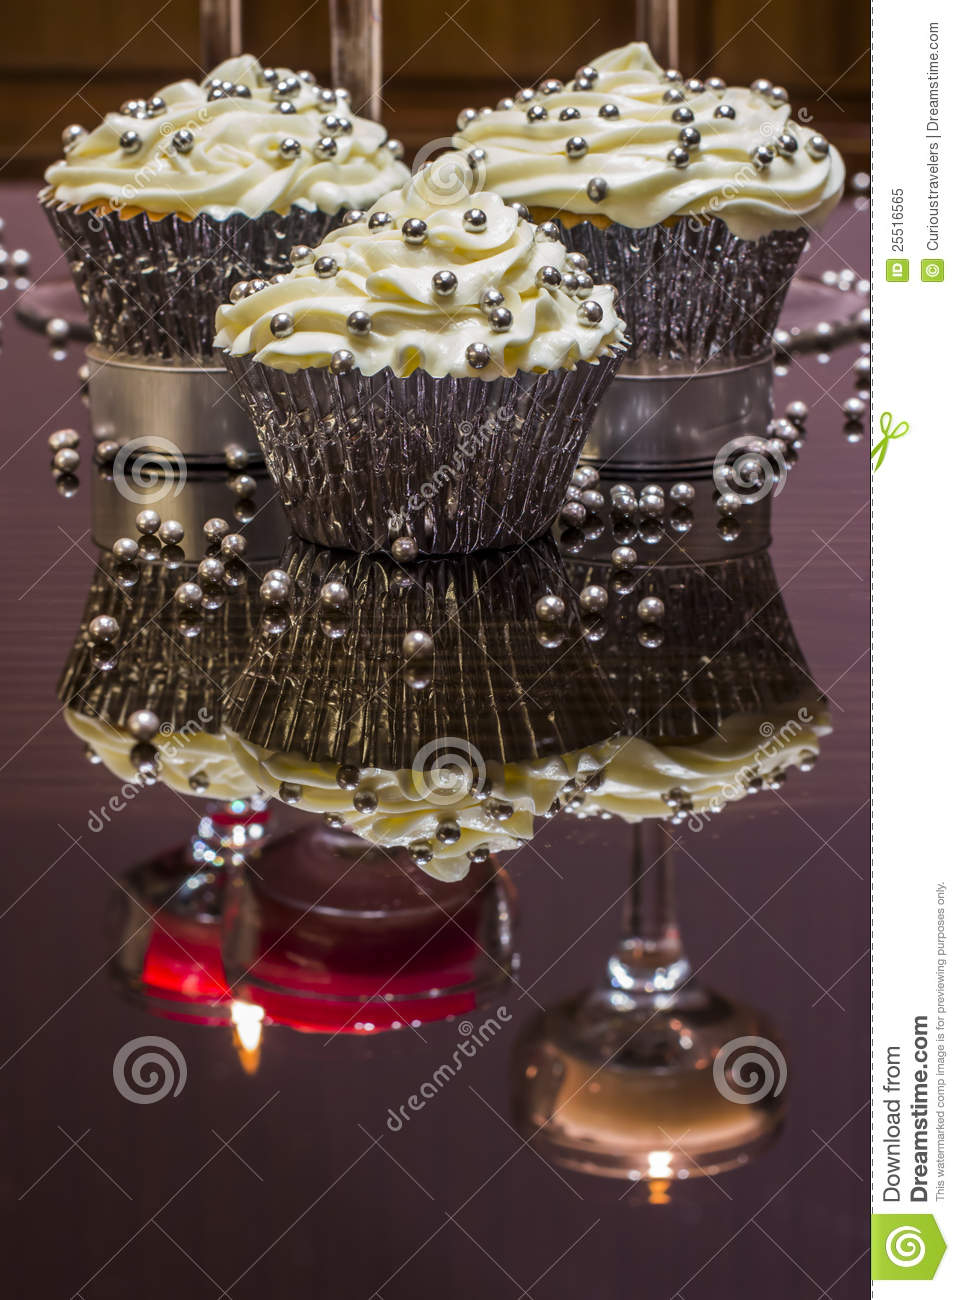 White Cupcakes With Silver Decorative Sprinkles Royalty